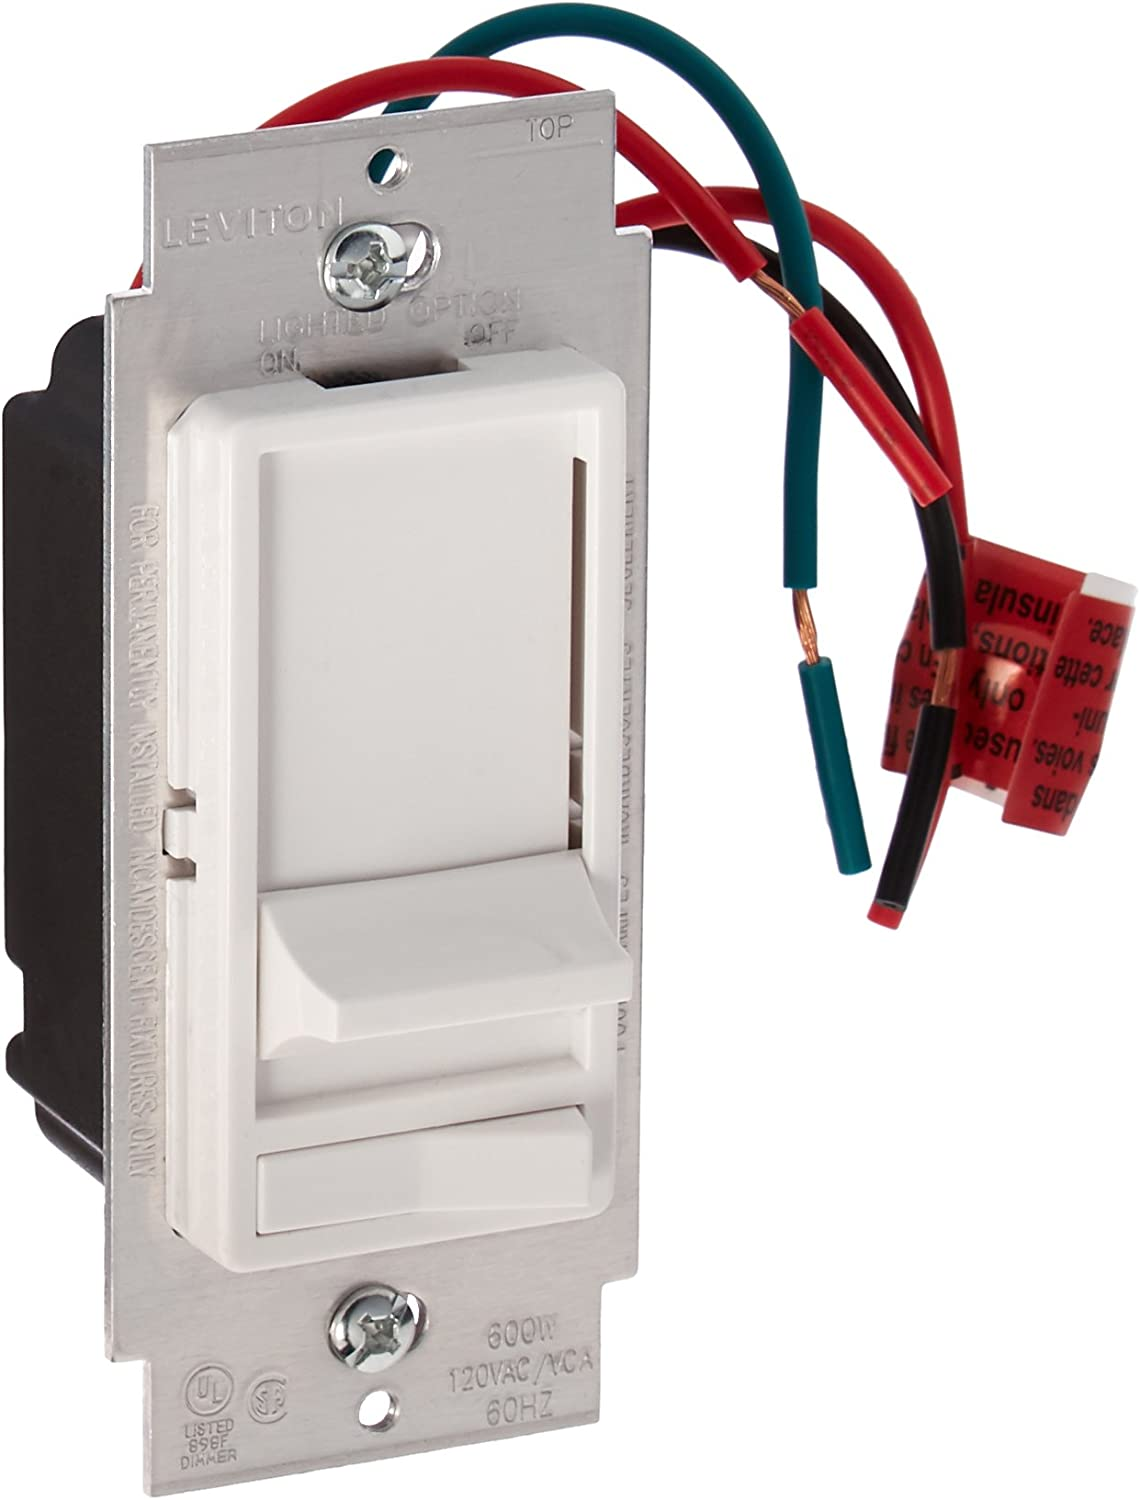 Leviton 6633 Plw Decora 3 Way Slide Dimmer With Preset Lighted Pad Option White Wall Dimmer Switches Amazon Com